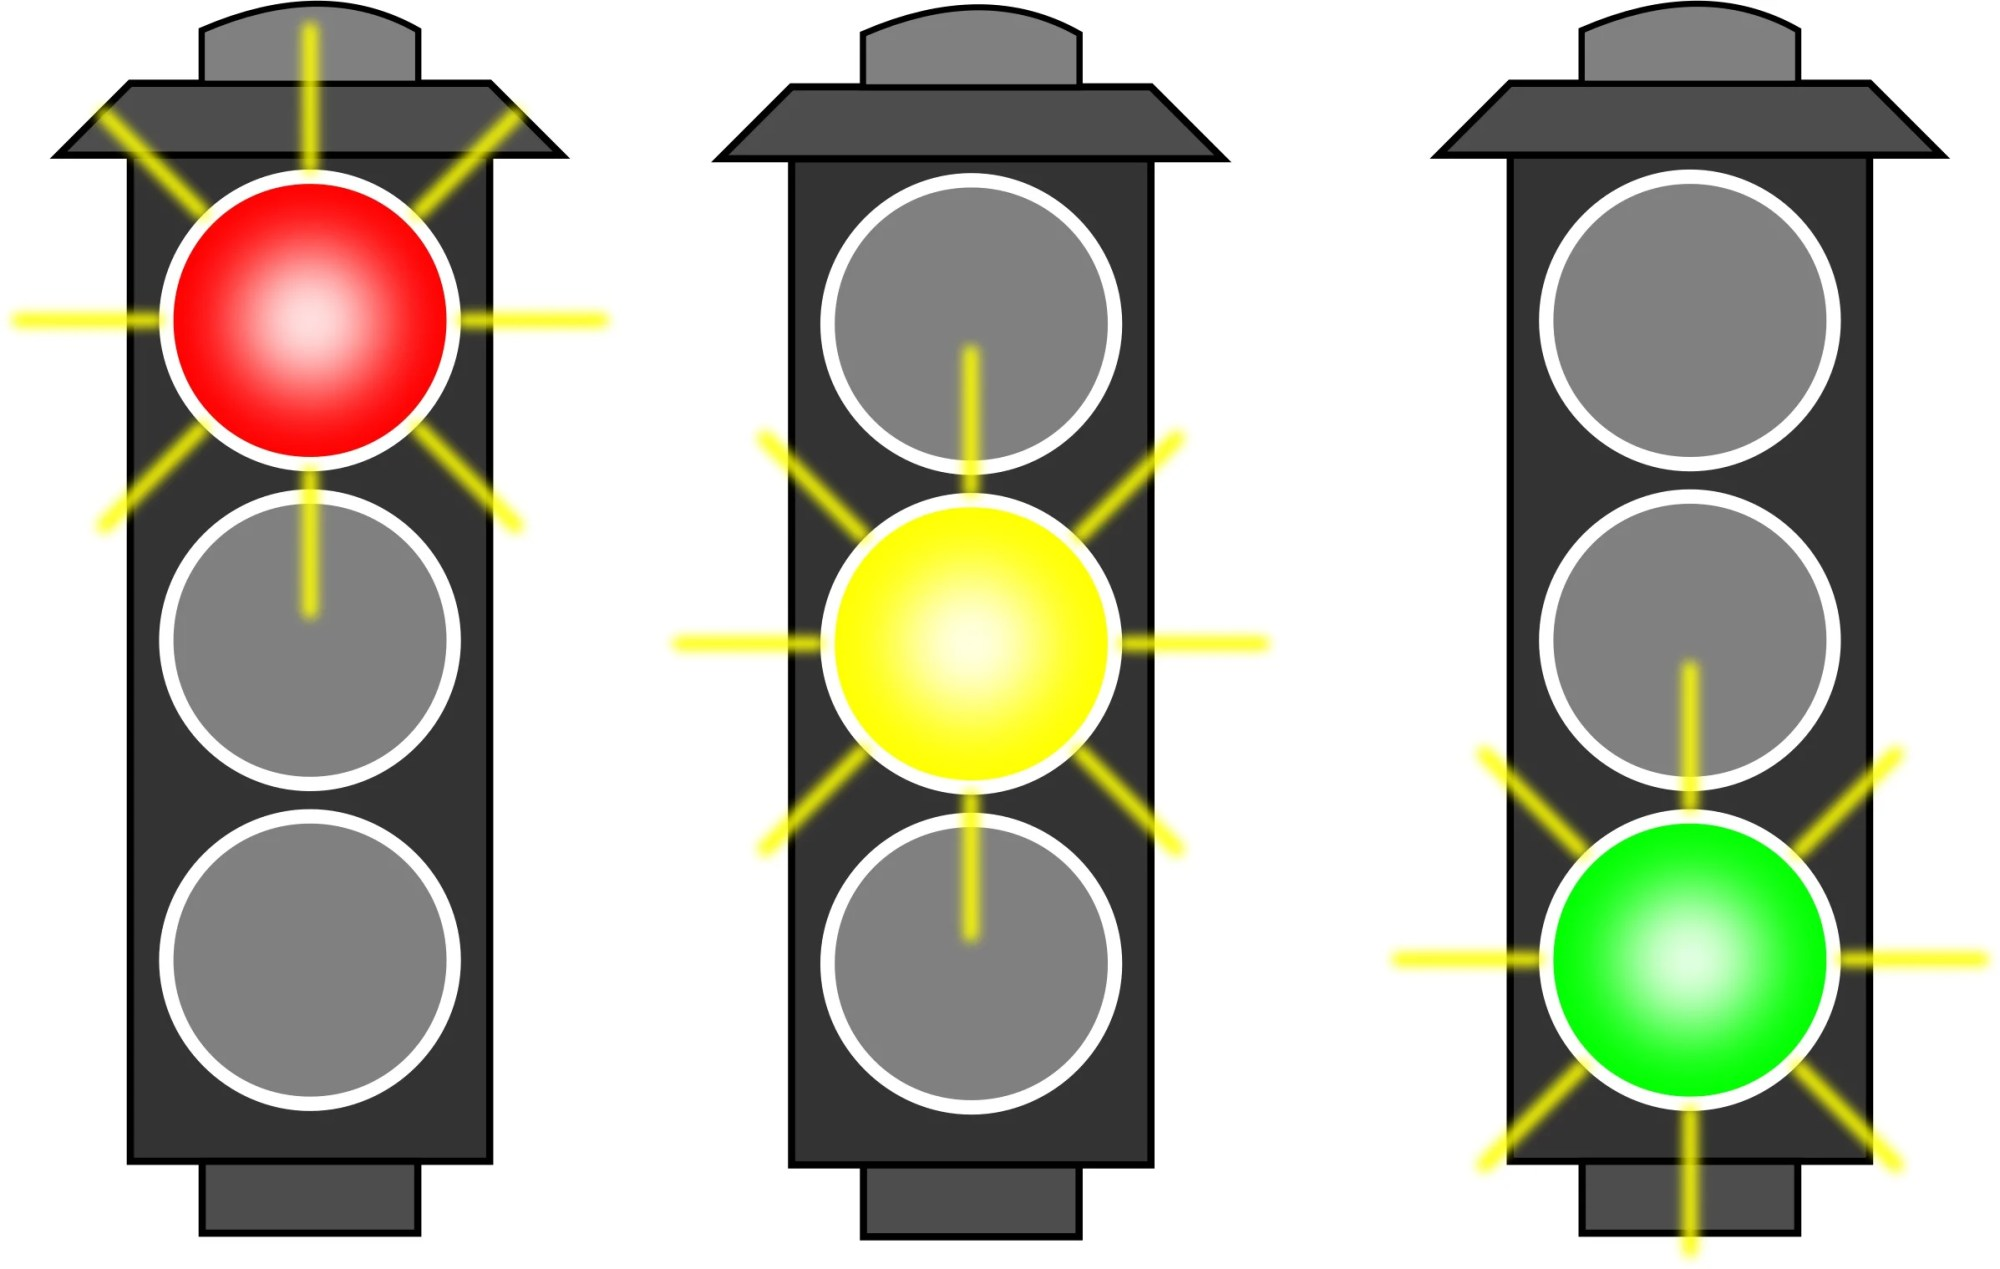 hight resolution of timing light sequences build a traffic light controller with an arduino mega